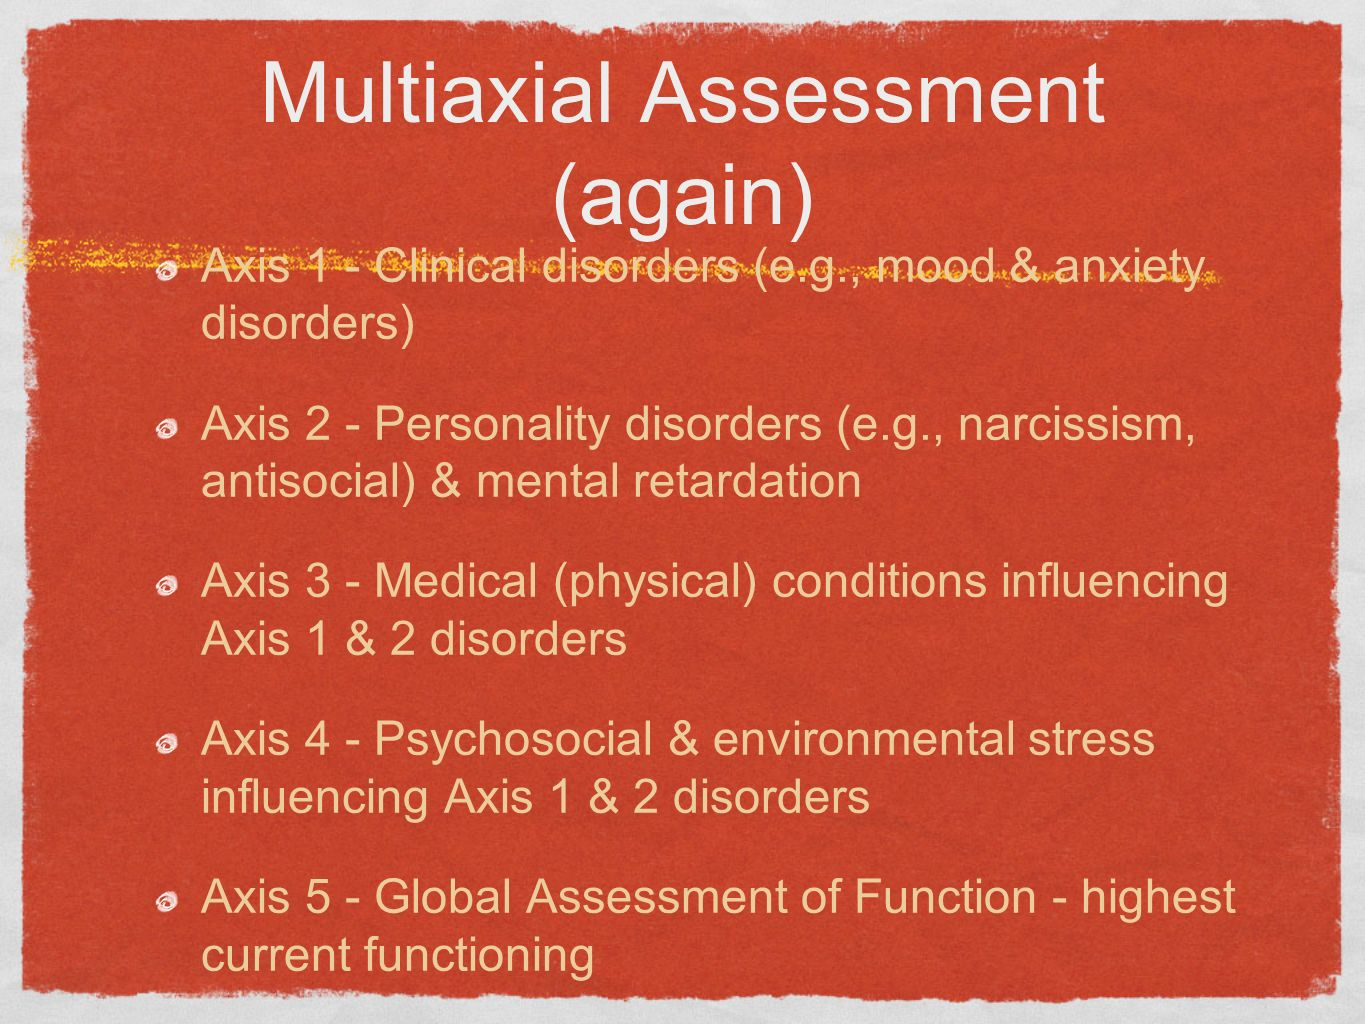 Multiaxial Assessment (again) Axis 1 - Clinical disorders (e.g., mood & anxiety disorders) Axis 2 - Personality disorders (e.g., narcissism, antisocia